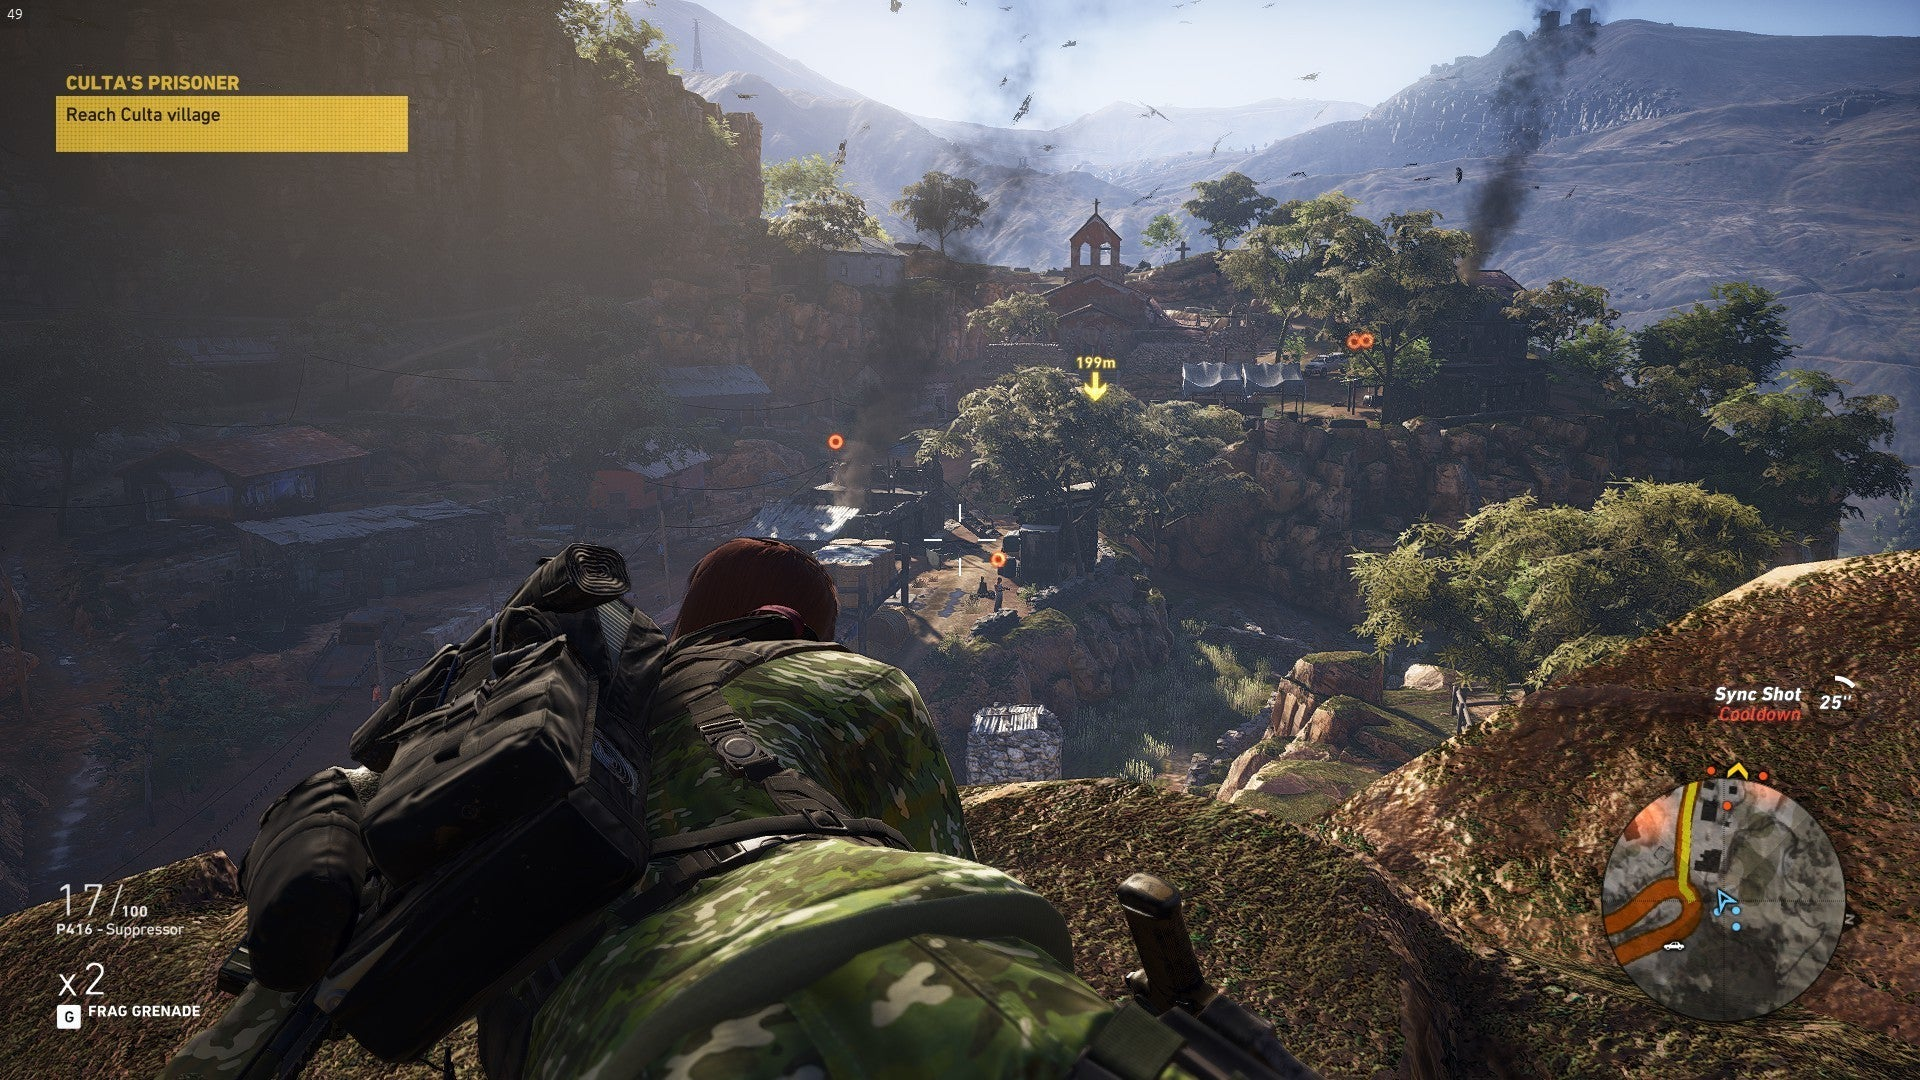 Ghost Recon Wildlands Karte.Ghost Recon Wildlands Review 400 Square Kilometers Of Emptiness